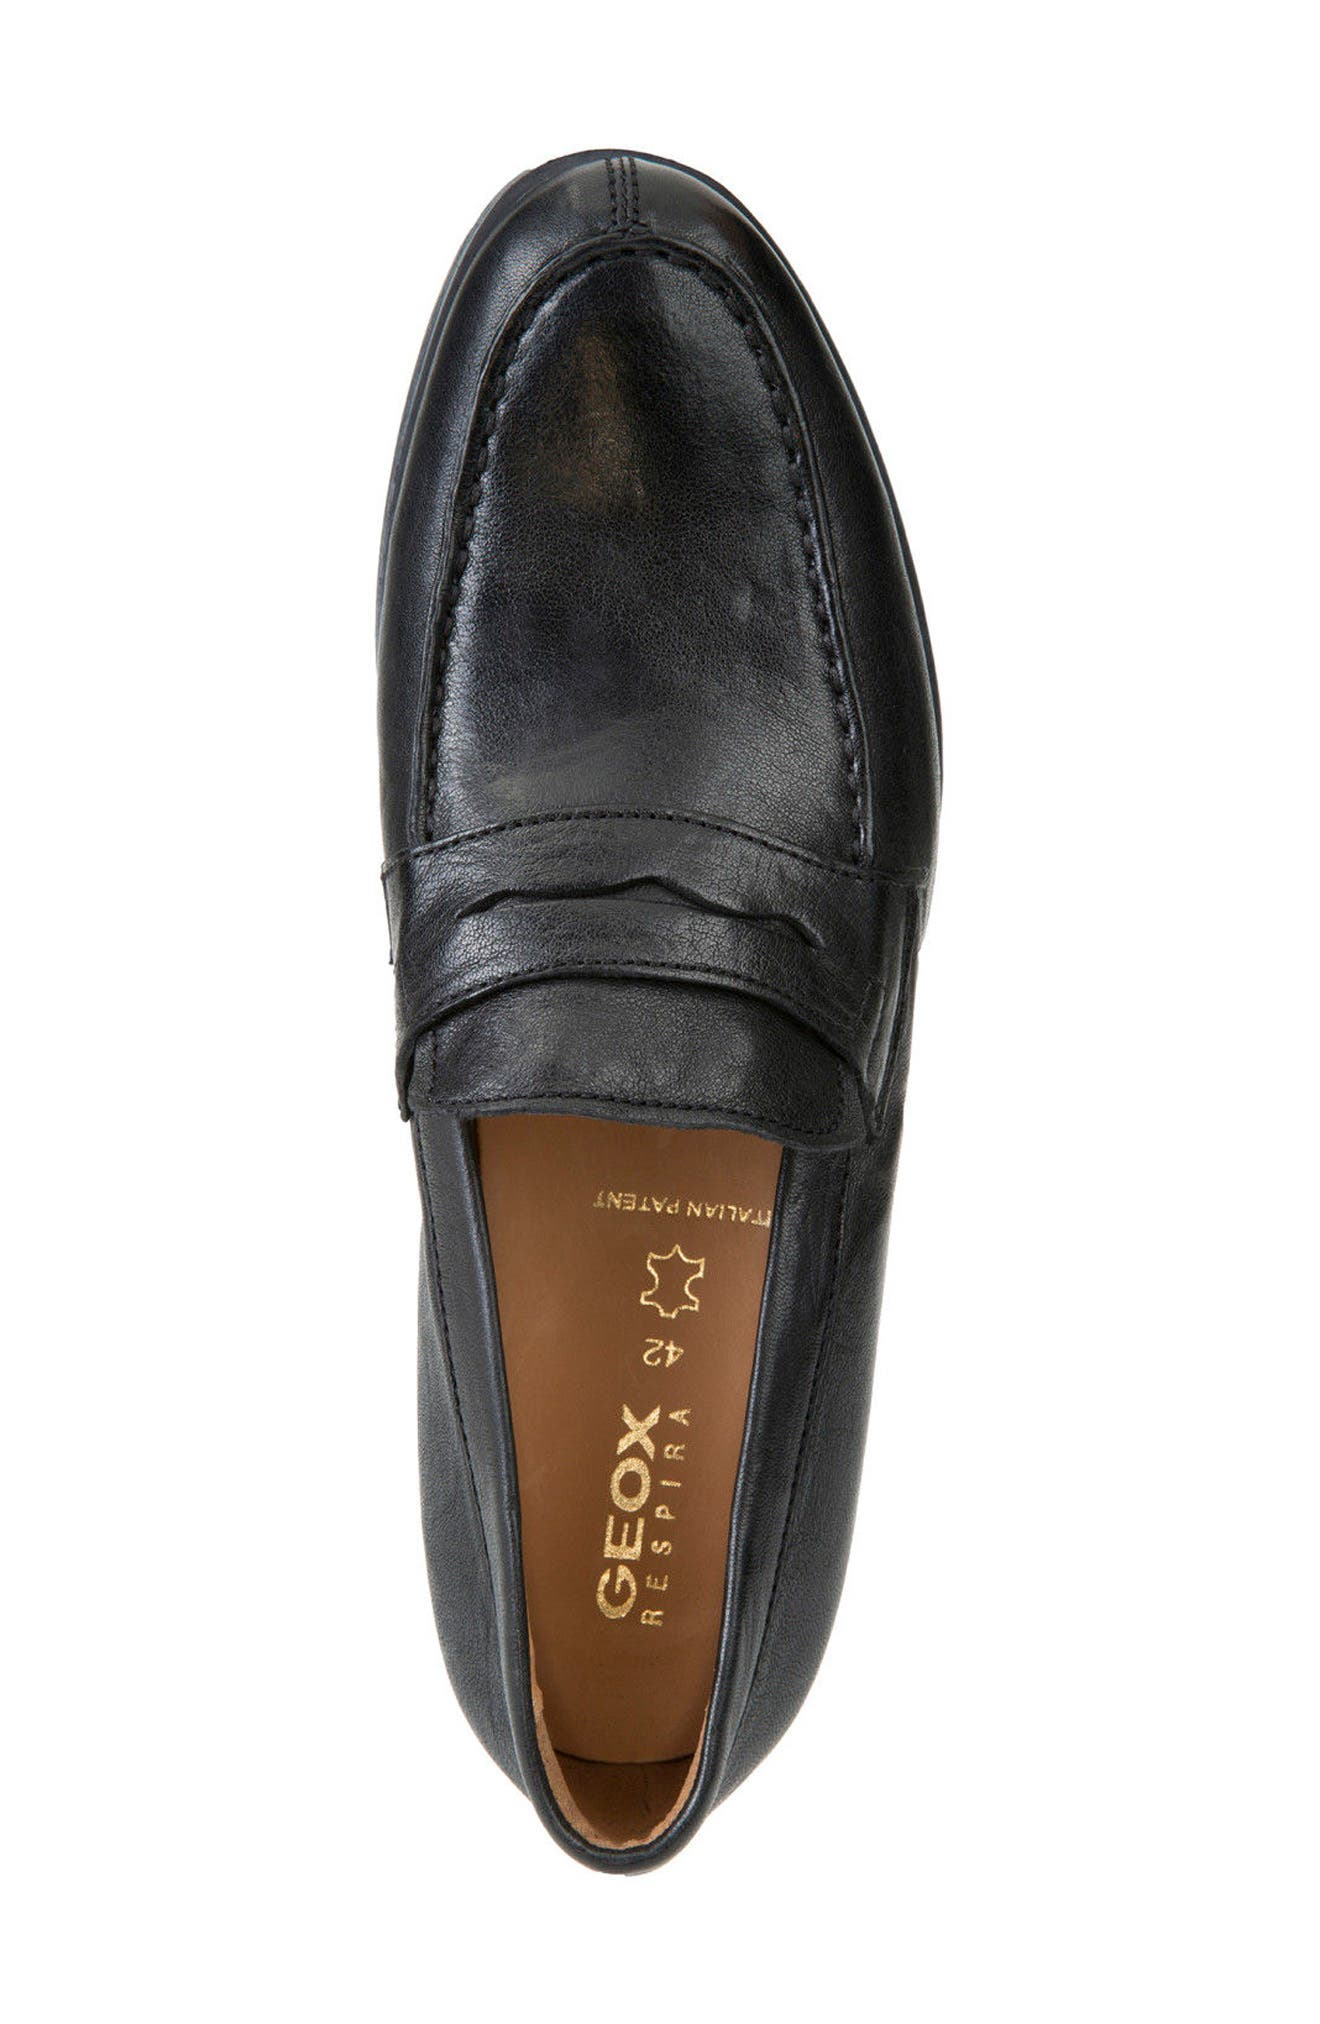 Besmington 6 Penny Loafer,                             Alternate thumbnail 4, color,                             Black Leather